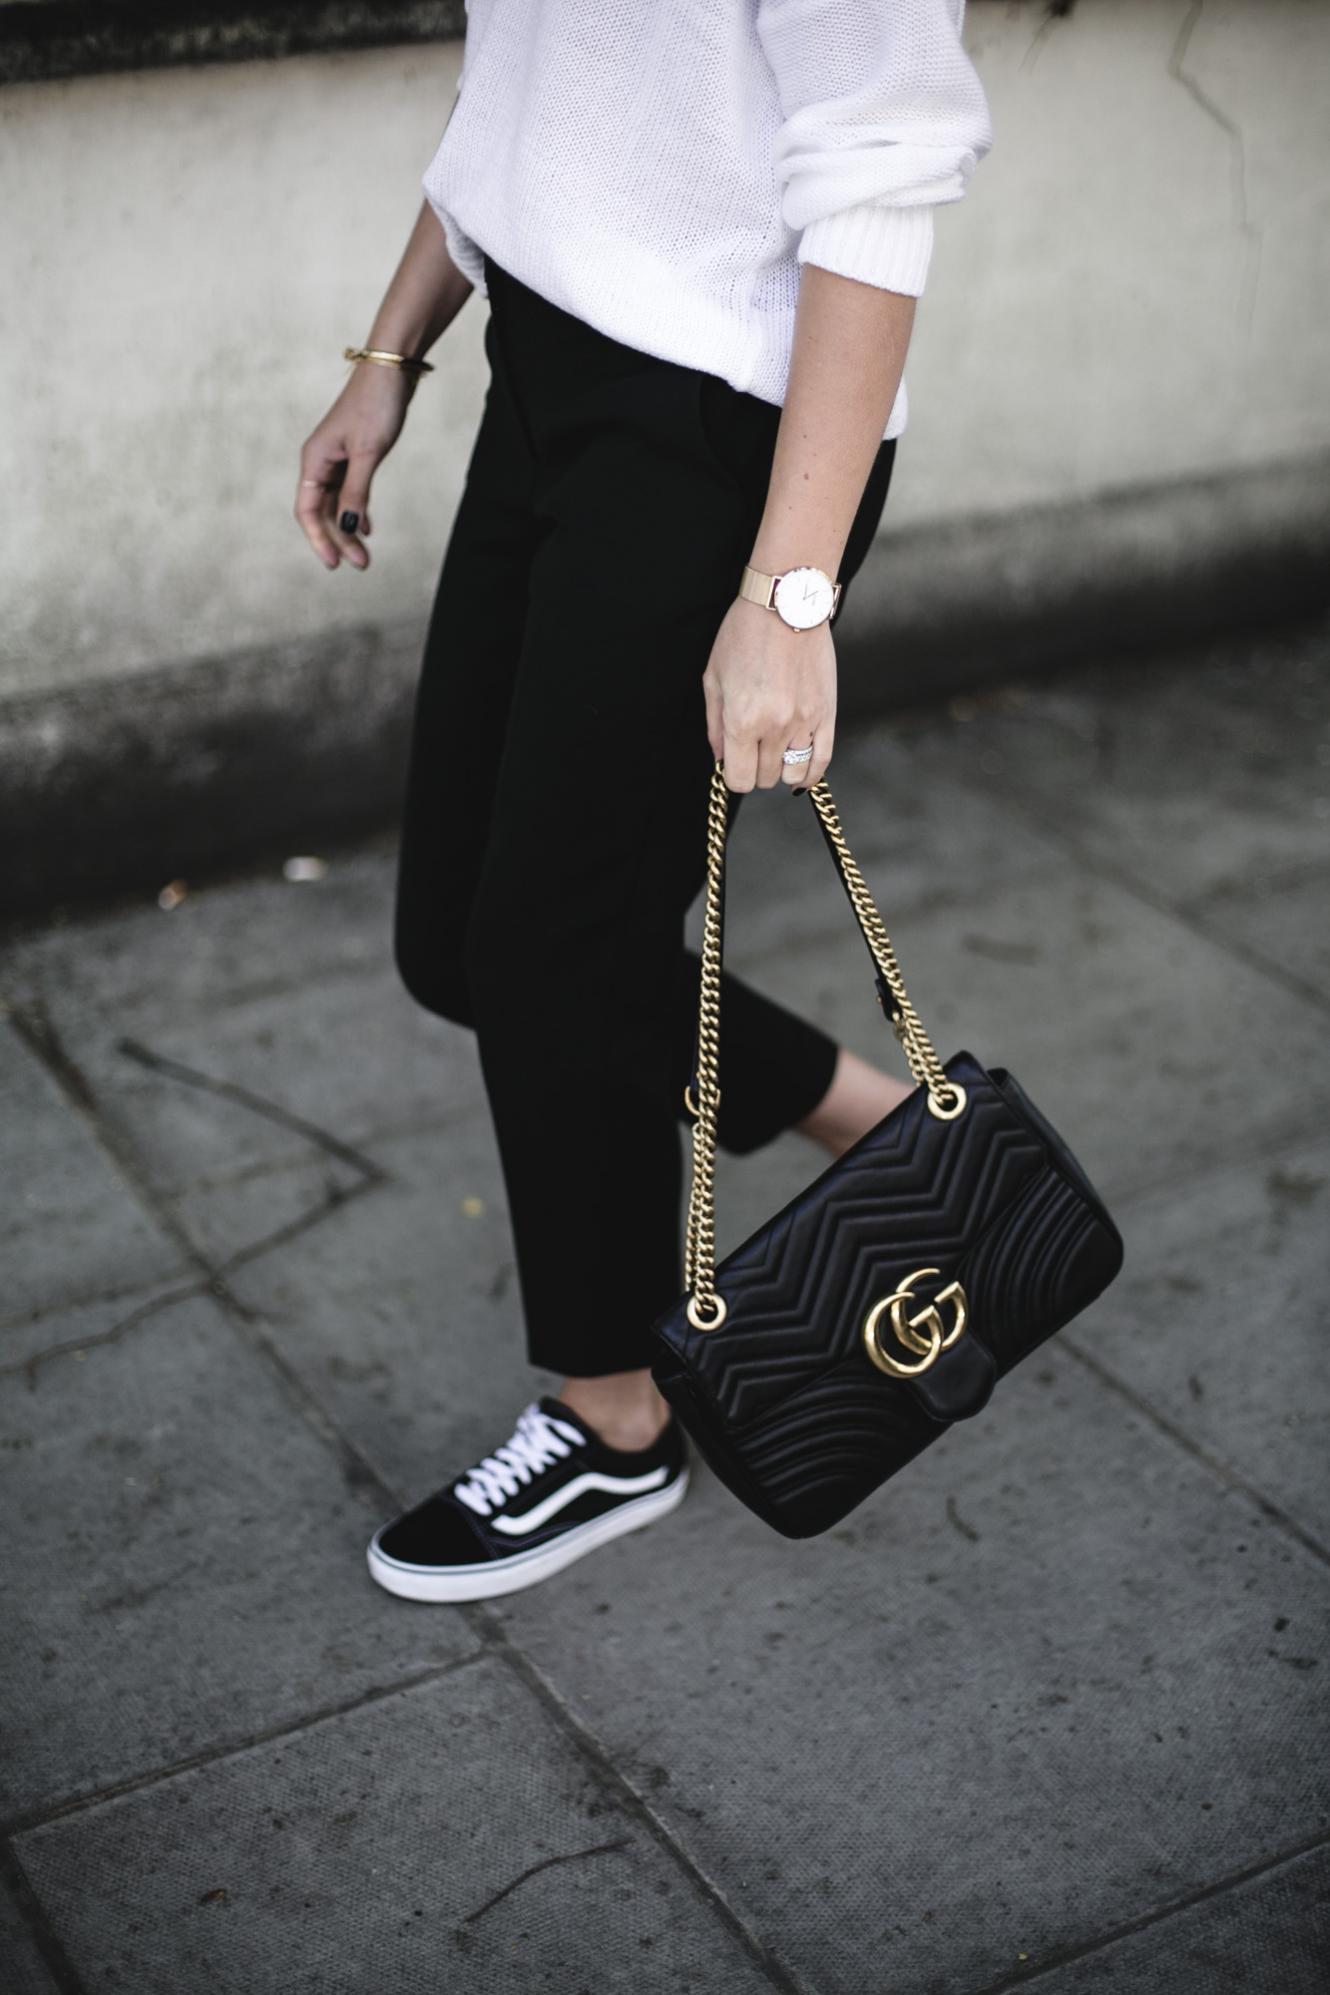 Vans old skool, white summer knit jumper, gold watch, black tailored slim trousers, Gucci Marmont bag